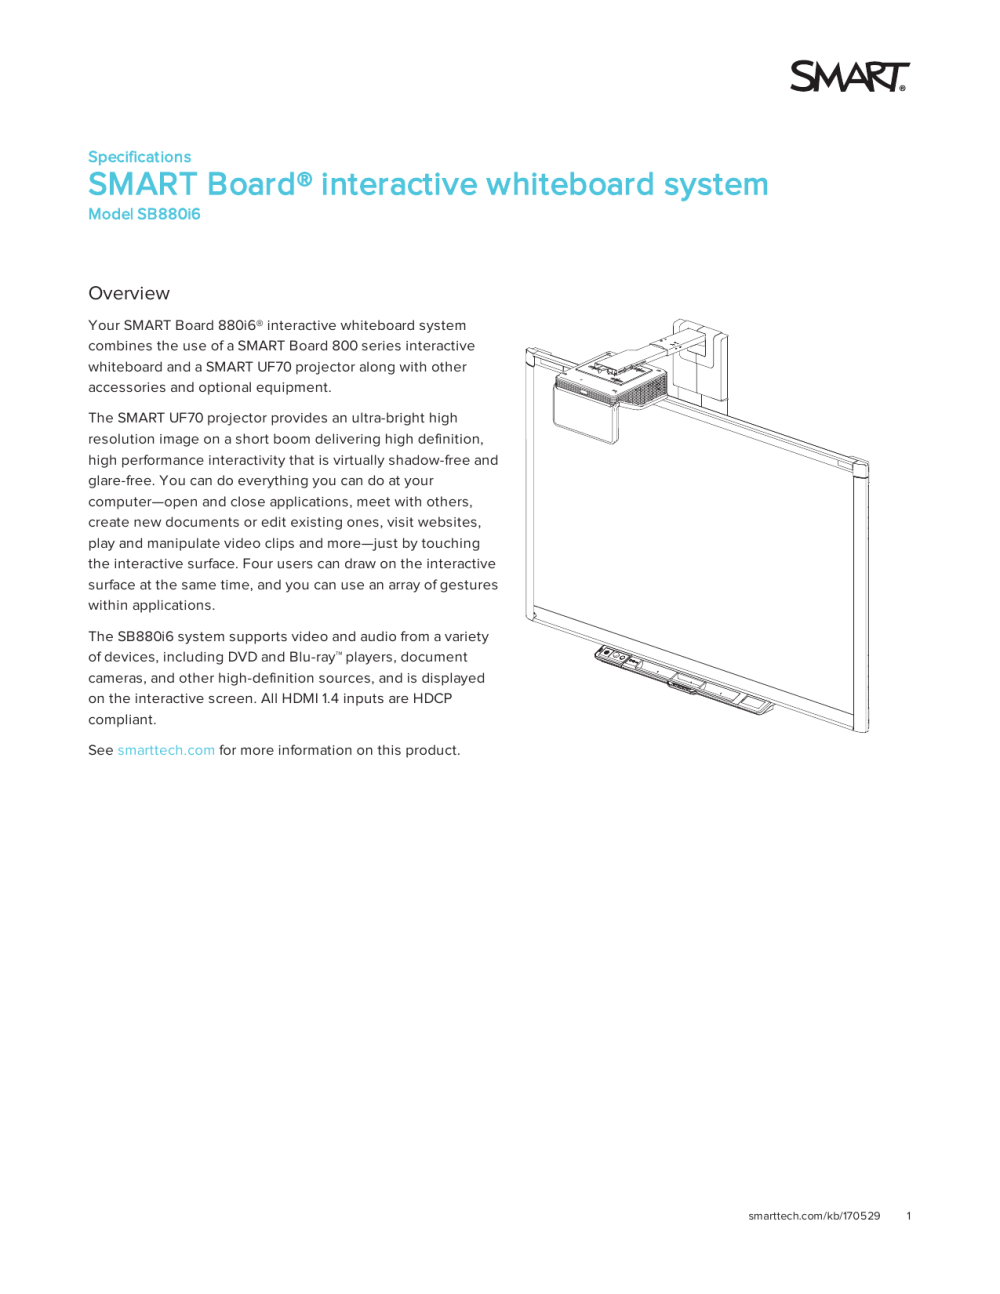 medium resolution of specifications smart board 880i6 interactive whiteboard system